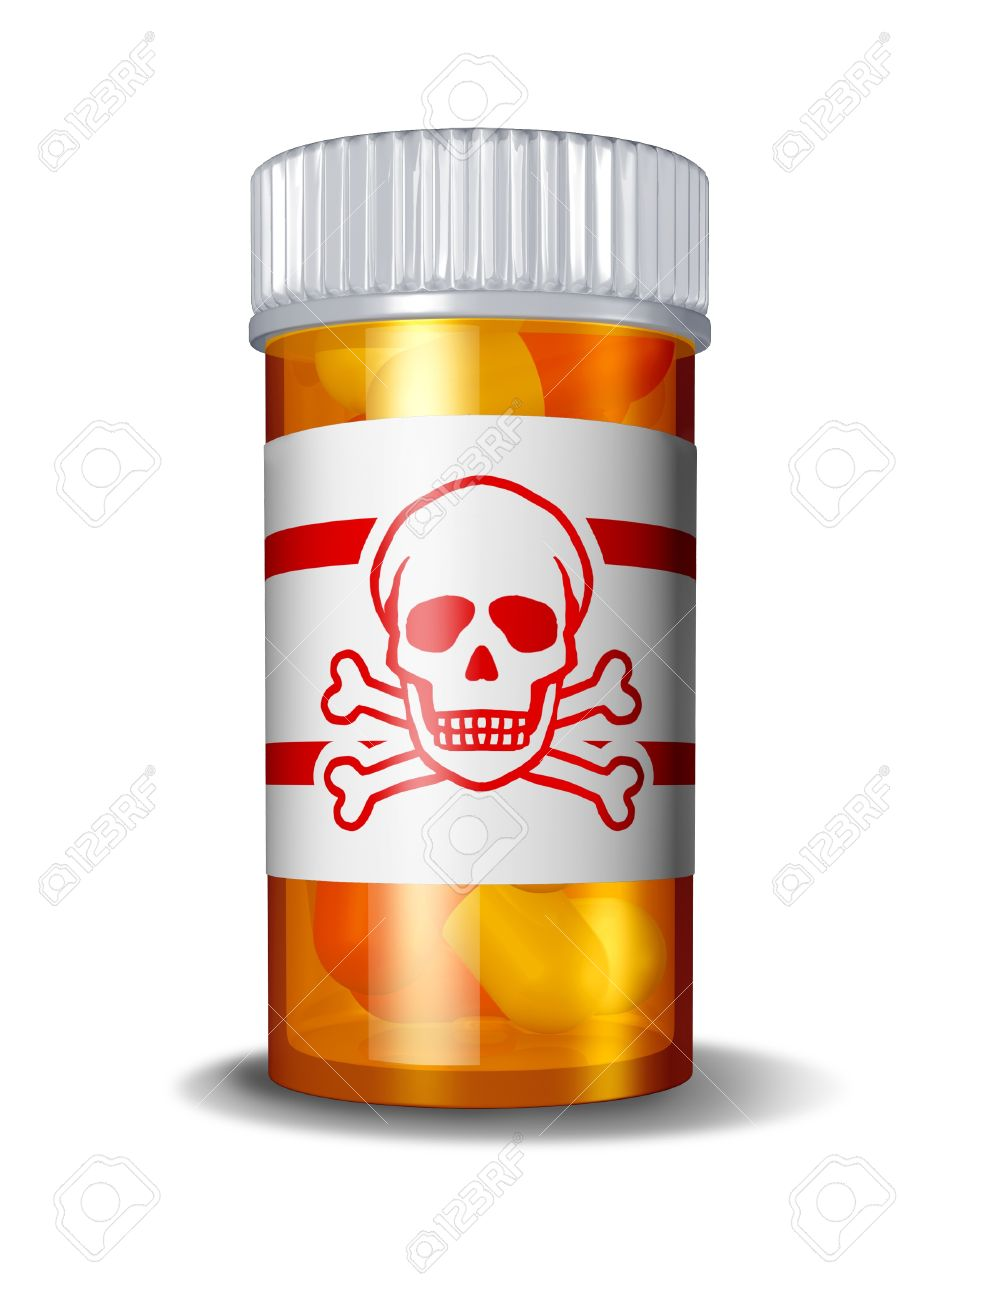 Dangerous prescription drugs due to hazerdous overdose of pharmaceuticals resulting in poisoning deaths from overdoses of medications including painkillers anti-anxiety drugs and sleeping pills with a danger sign label on a pill button. Stock Photo - 11840328